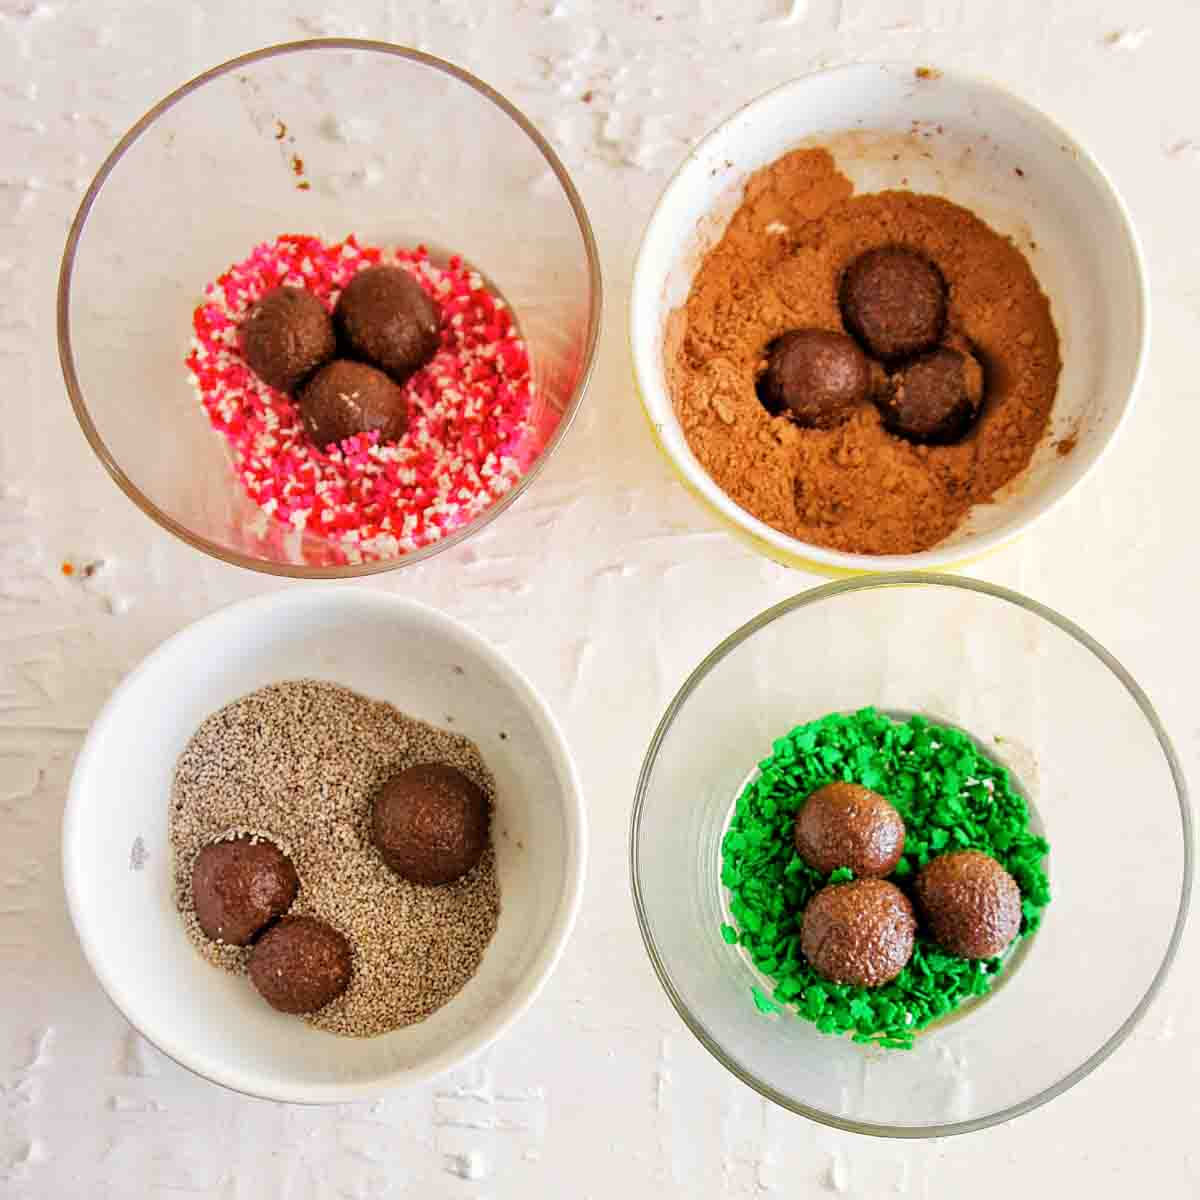 Four small bowls with sprinkles and chocolate balls in them